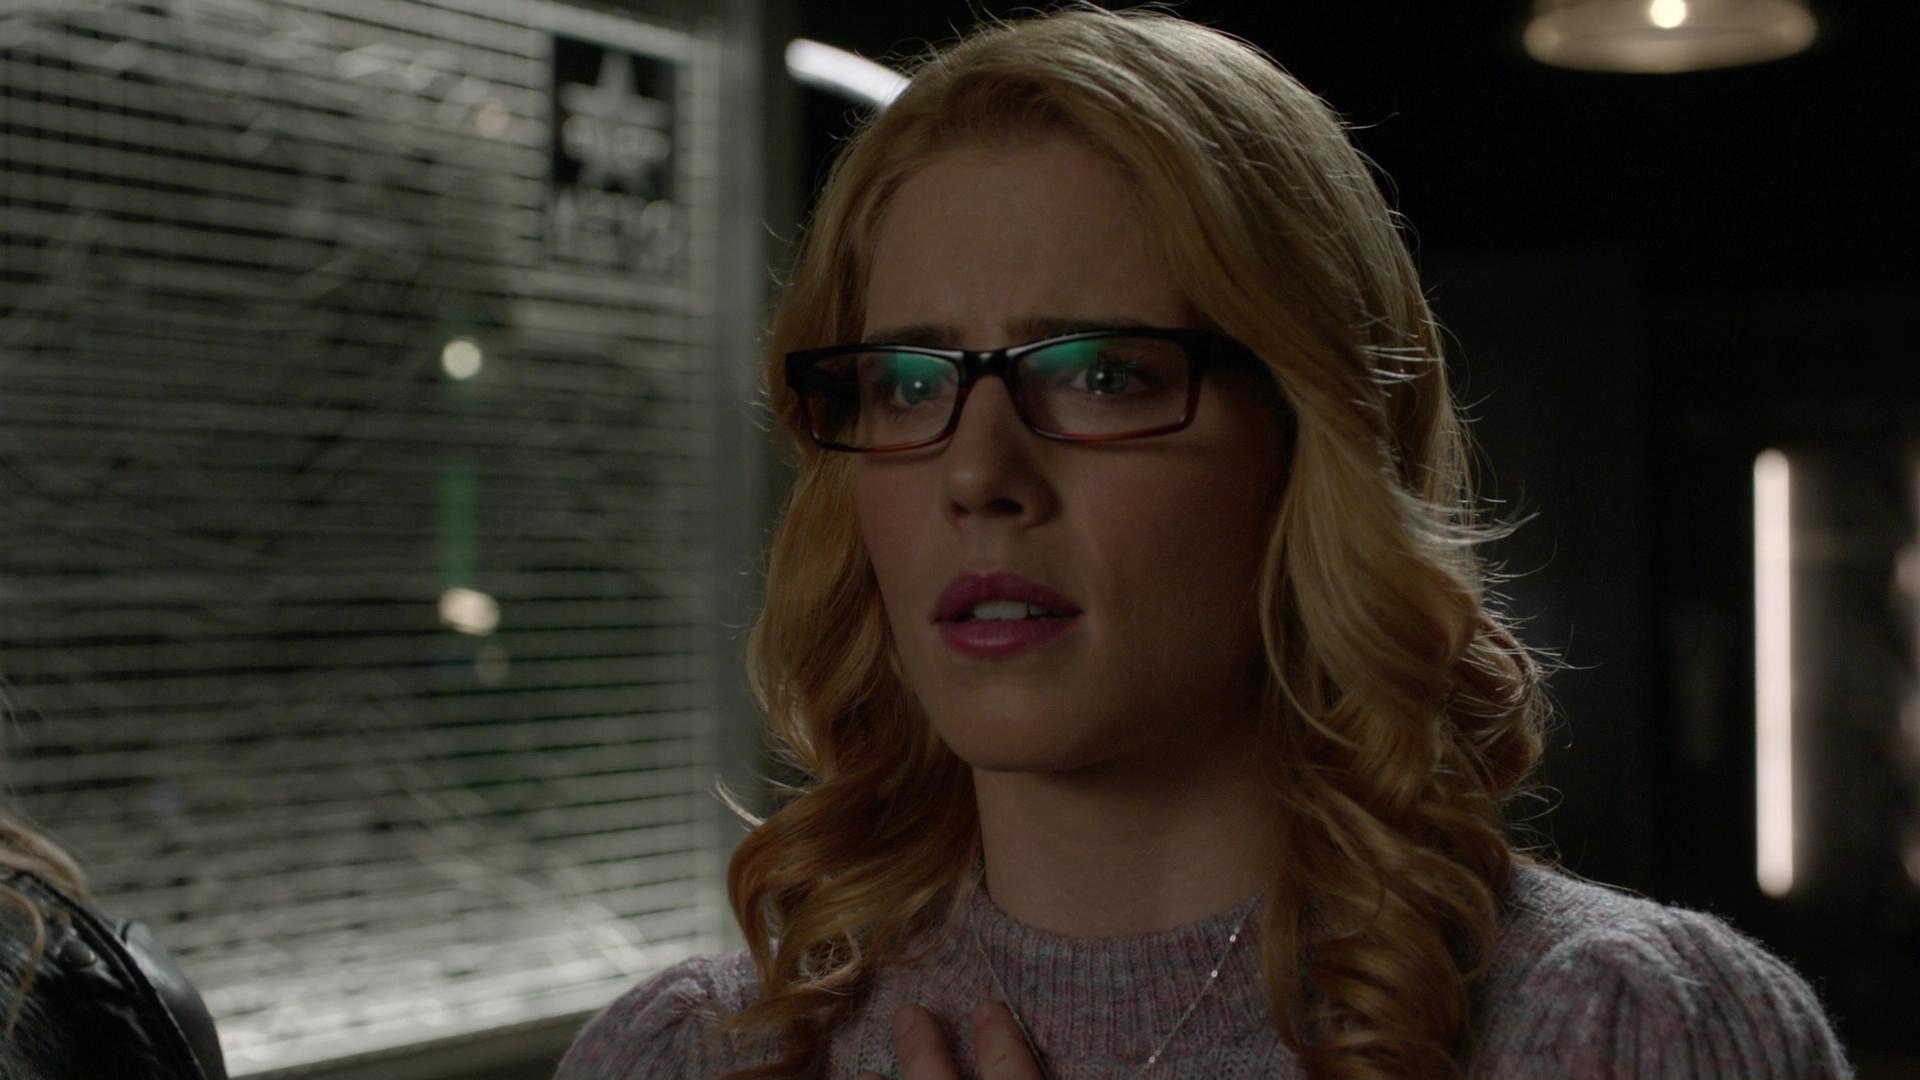 Felicity Smoak | Arrowverse Wiki | FANDOM powered by Wikia